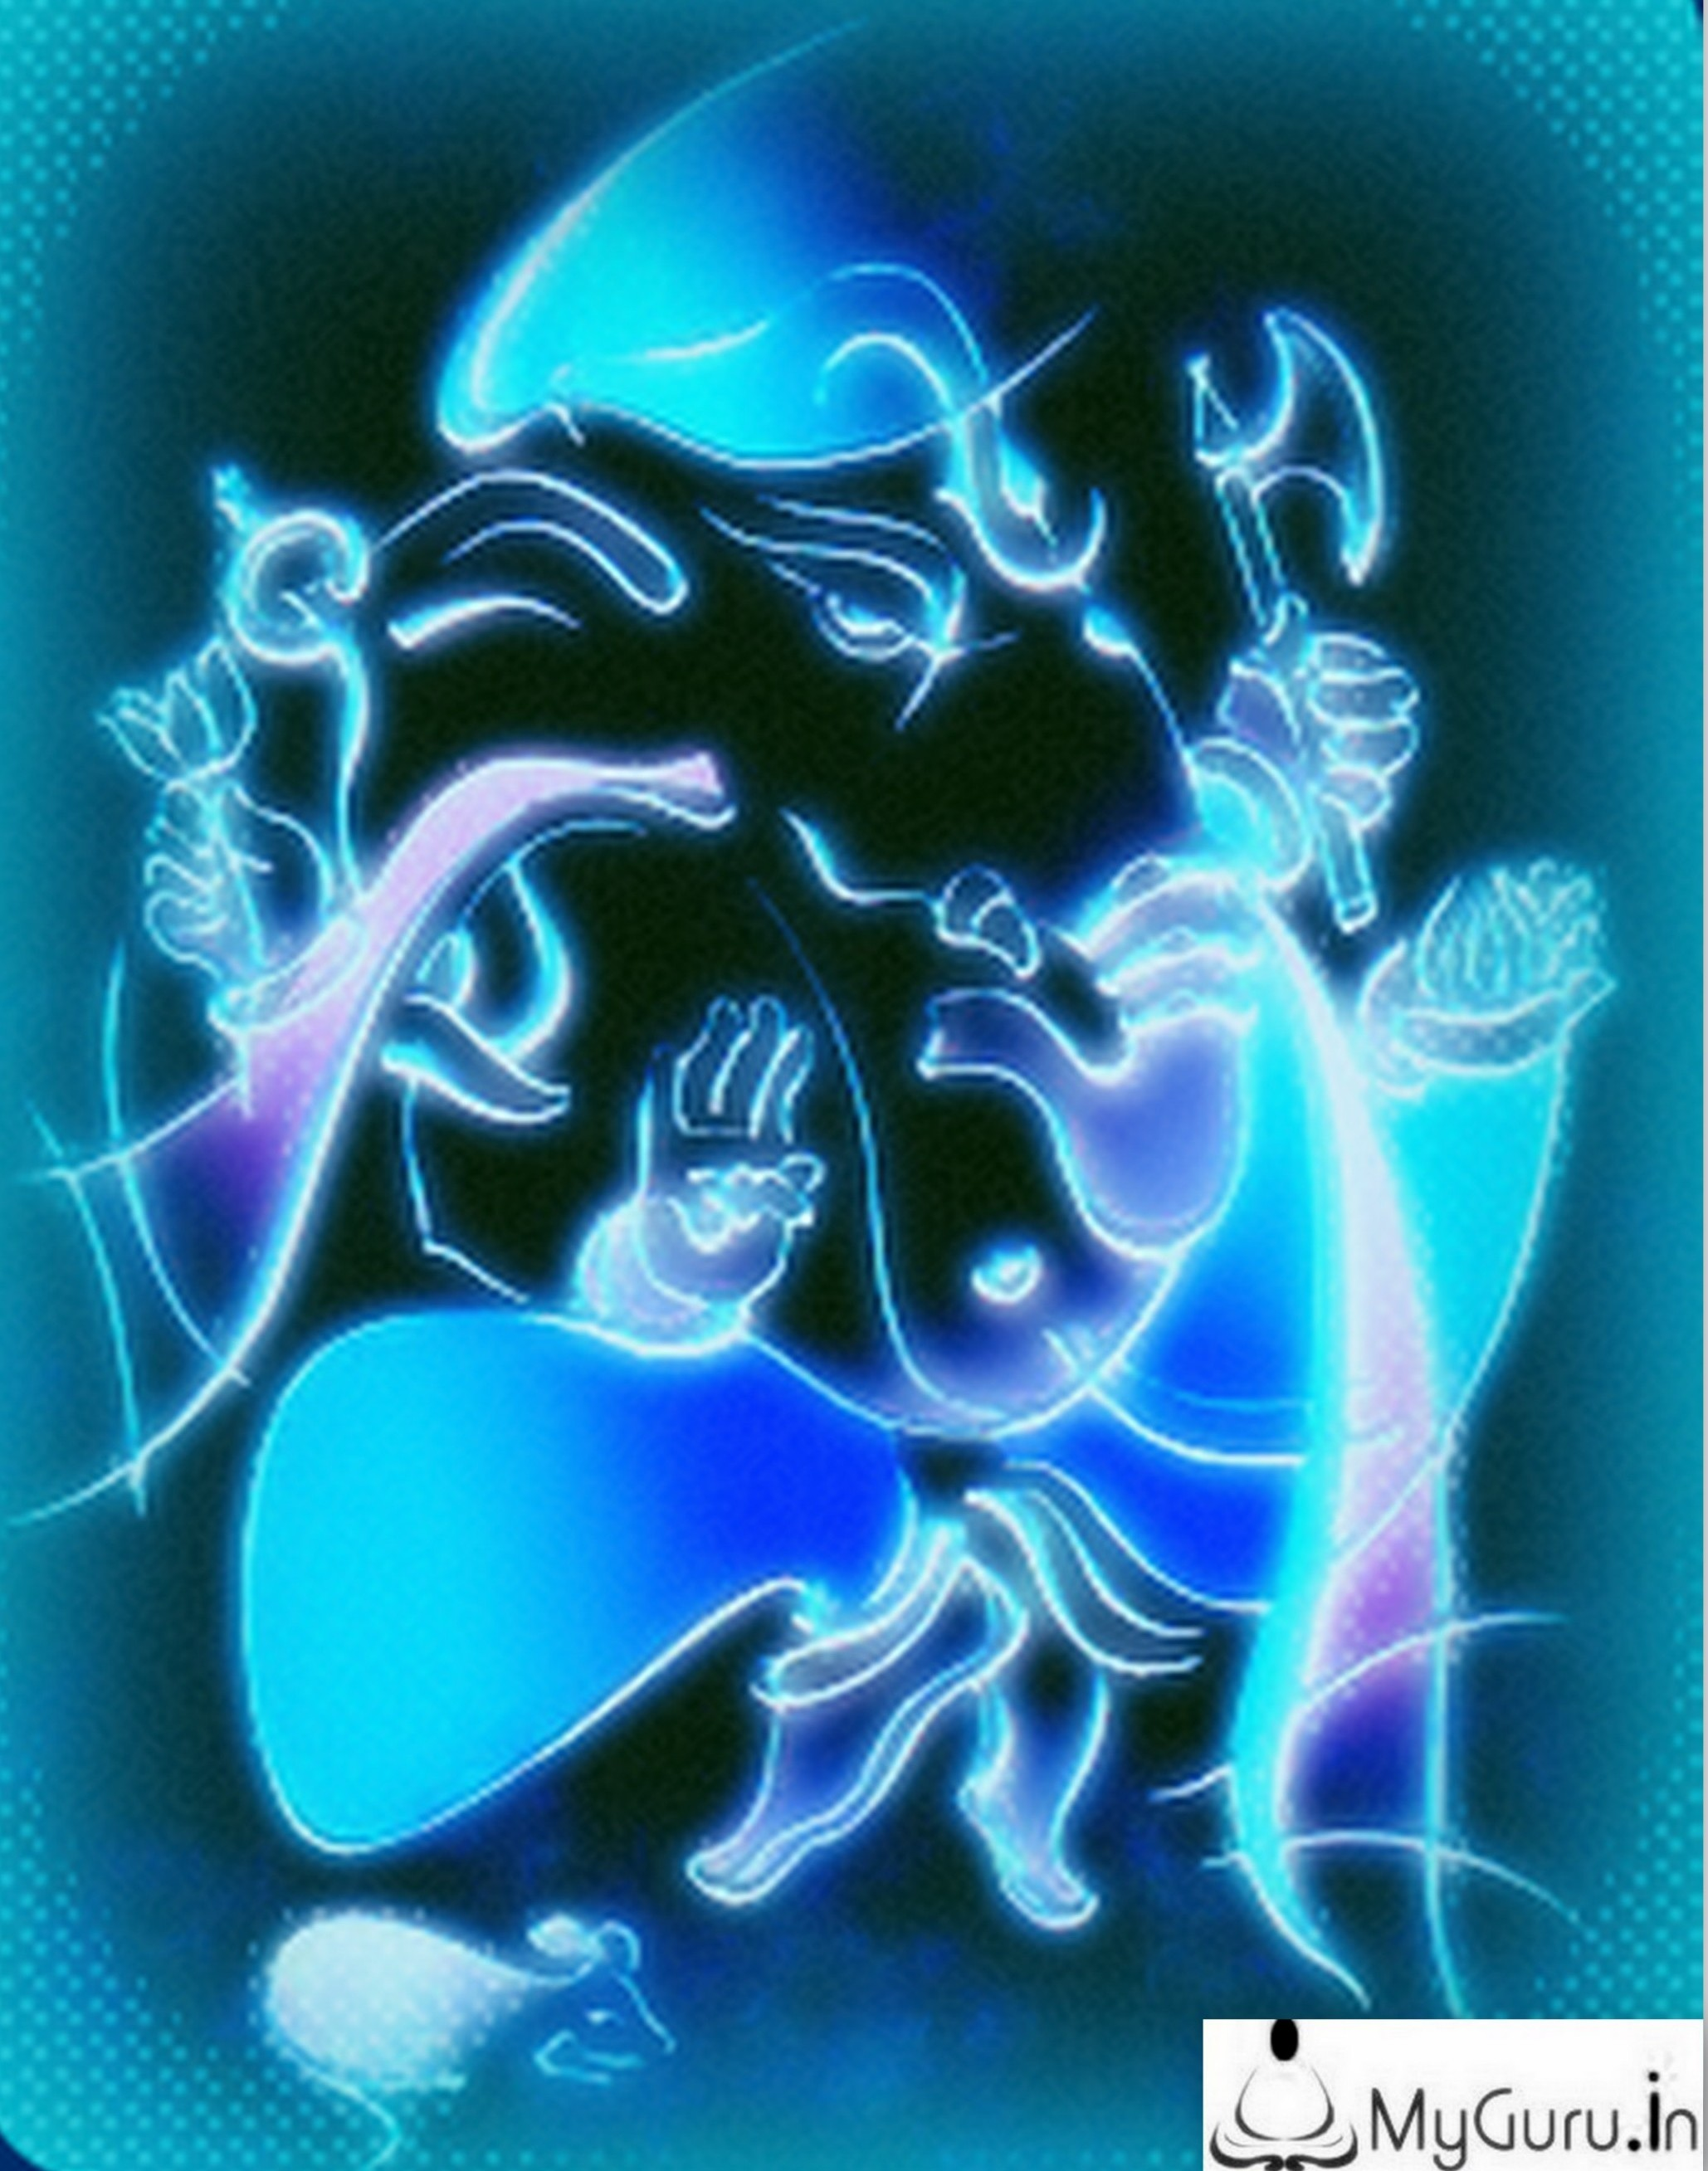 Lord Ganesha with shine of OM